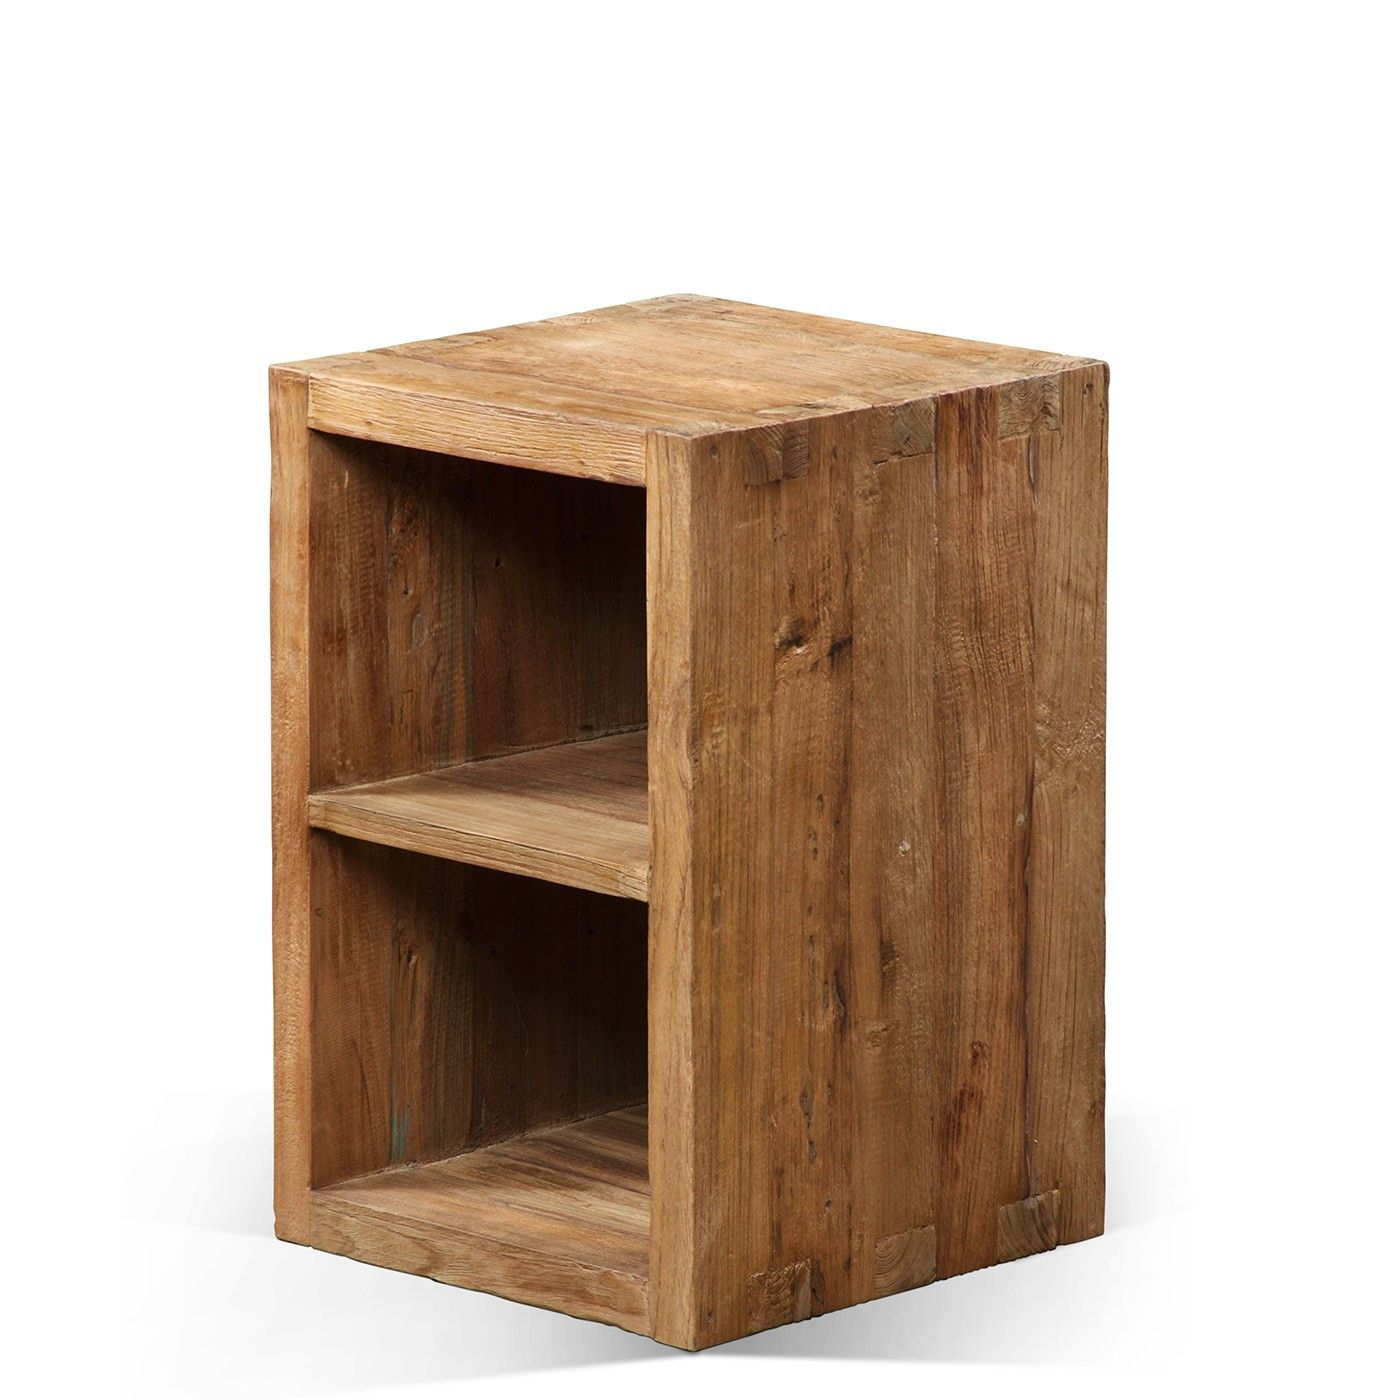 raft unmilled storage cube with shelf, 100% reclaimed teak